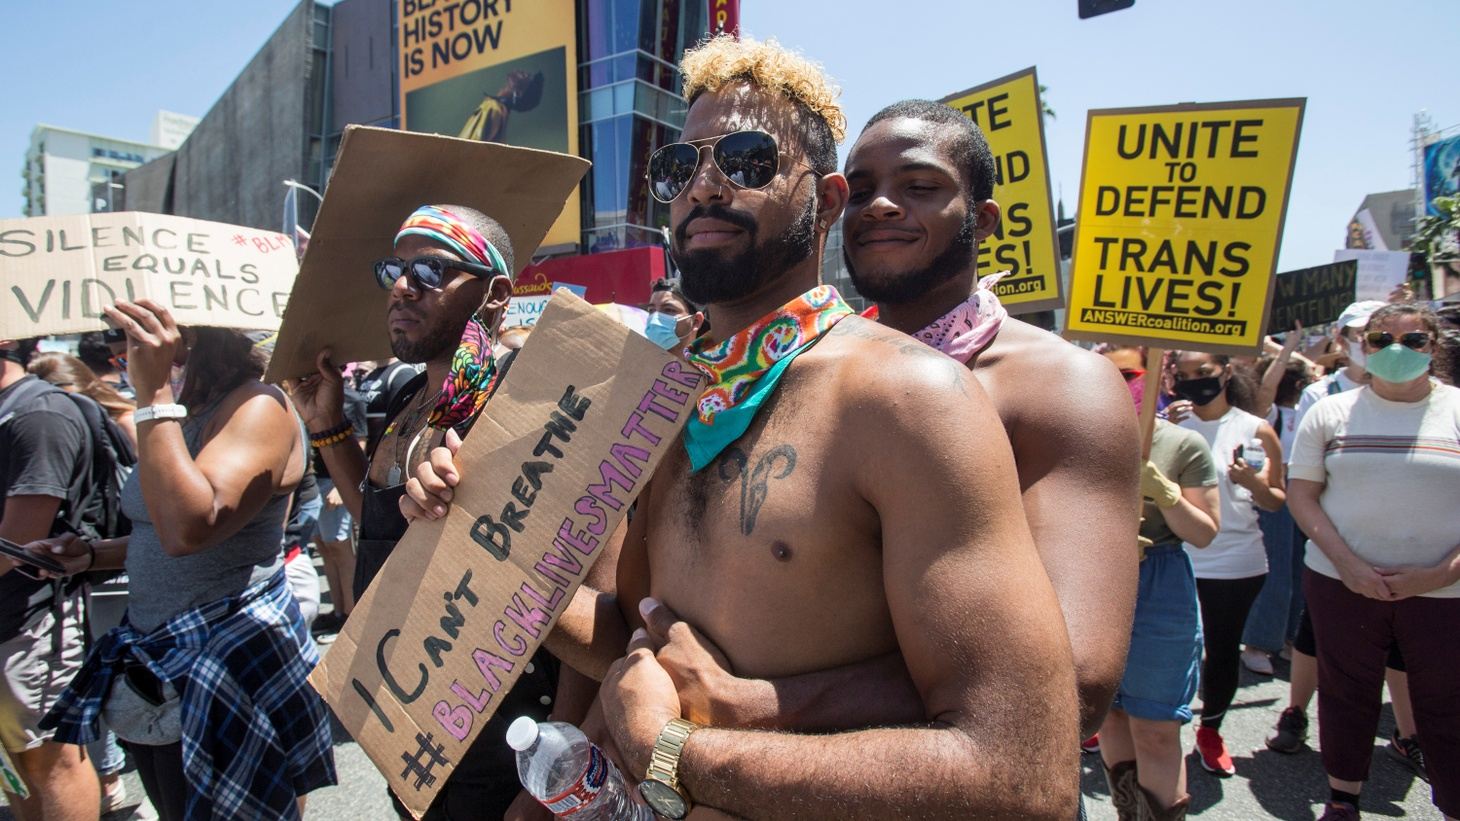 """Unite to defend trans lives!"" is written on one of the signs in this All Black Lives Matter march in Hollywood, Los Angeles, California, U.S., June 14, 2020. The march was organized by Black LGBTQ+ leaders in the aftermath of the death of George Floyd."